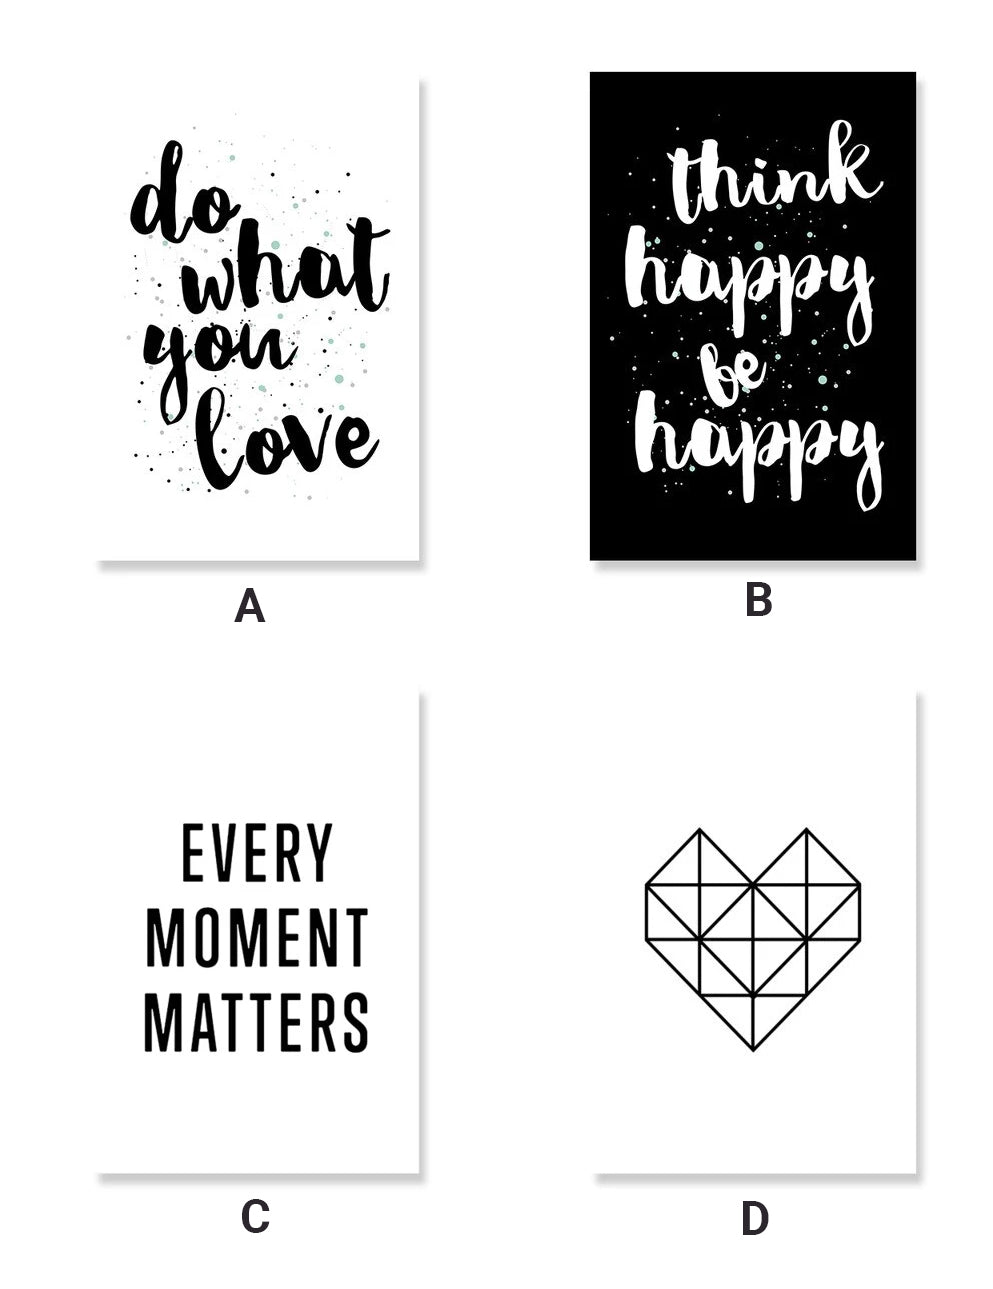 Do What You Love Positive Quotes Wall Art Nordic Style Black & White Minimalist Inspirational Word Art Fine Art Canvas Prints Home Office Interior Decor